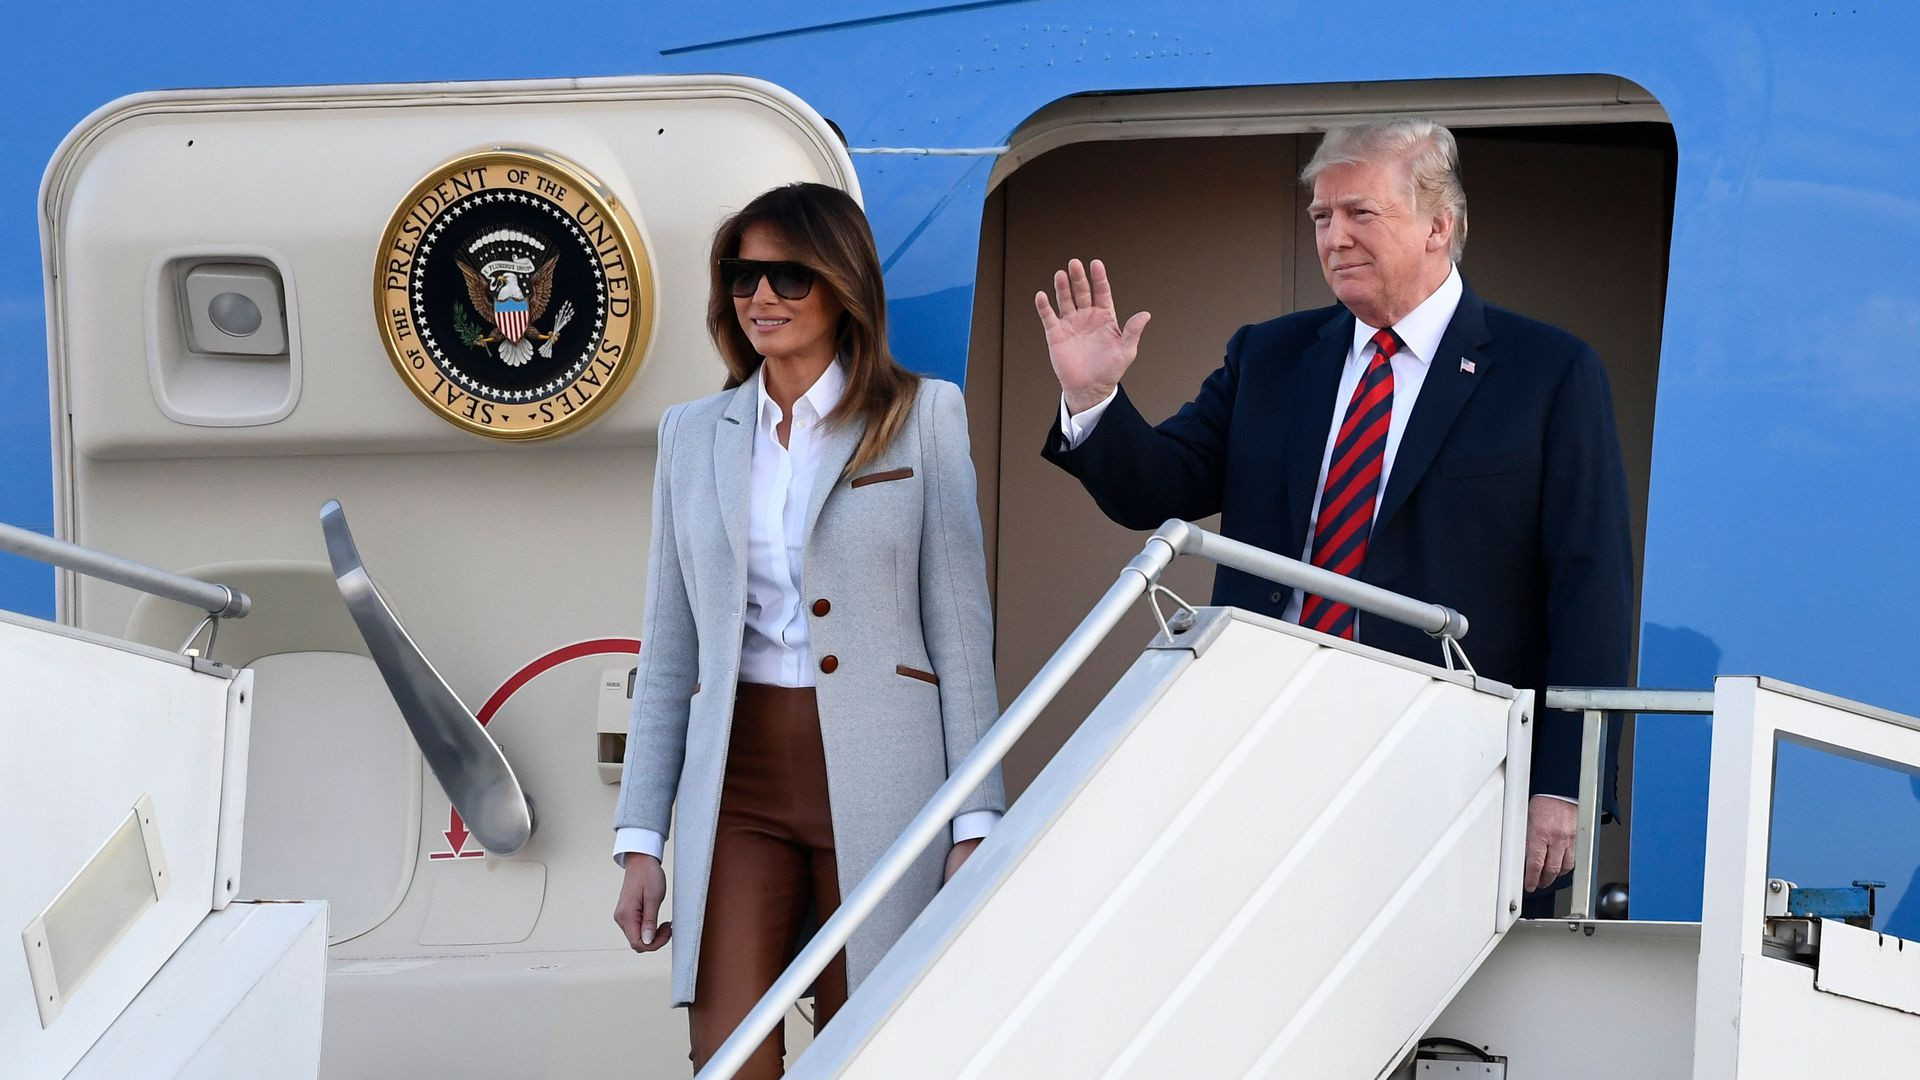 Melania and Trump on Air Force One staircase waving.